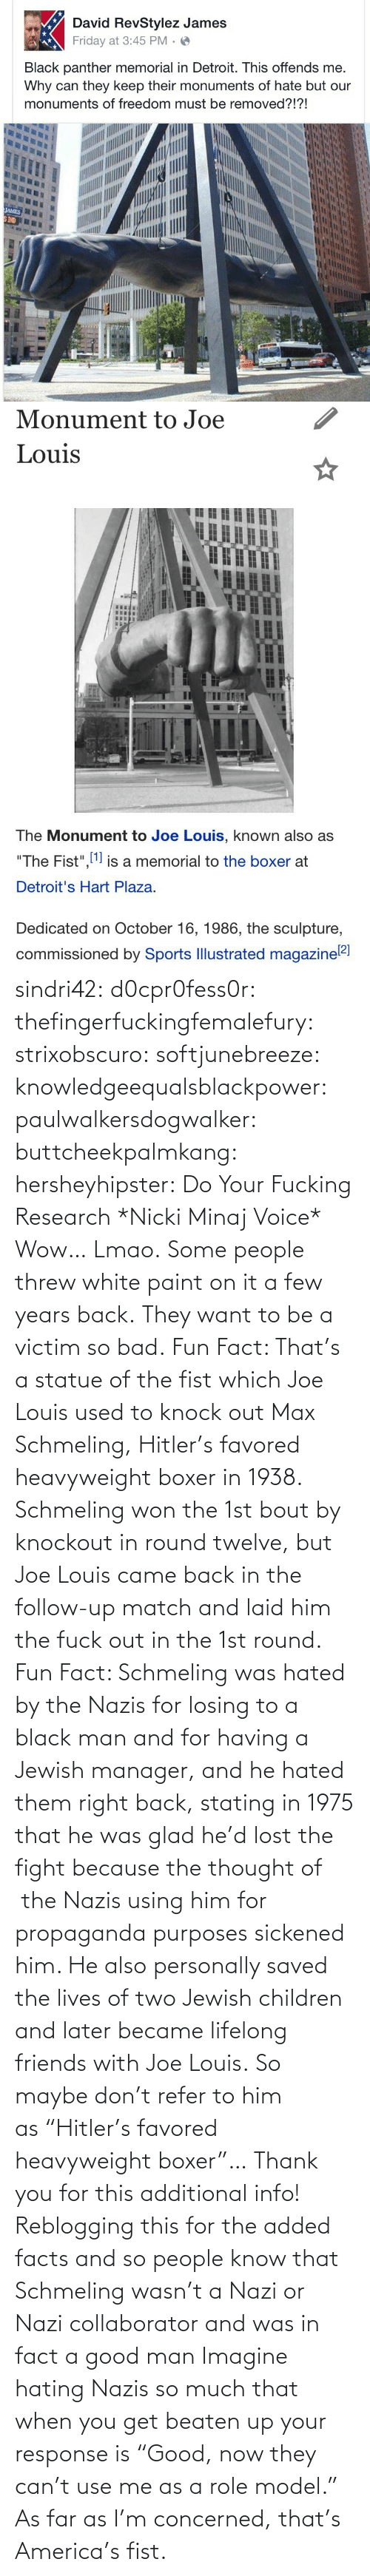 "want: sindri42:  d0cpr0fess0r:  thefingerfuckingfemalefury:  strixobscuro:  softjunebreeze:  knowledgeequalsblackpower:  paulwalkersdogwalker:   buttcheekpalmkang:   hersheyhipster:  Do Your Fucking Research *Nicki Minaj Voice*    Wow… Lmao.   Some people threw white paint on it a few years back.   They want to be a victim so bad.  Fun Fact: That's a statue of the fist which Joe Louis used to knock out Max Schmeling, Hitler's favored heavyweight boxer in 1938. Schmeling won the 1st bout by knockout in round twelve, but Joe Louis came back in the follow-up match and laid him the fuck out in the 1st round.  Fun Fact: Schmeling was hated by the Nazis for losing to a black man and for having a Jewish manager, and he hated them right back, stating in 1975 that he was glad he'd lost the fight because the thought of  the Nazis using him for propaganda purposes sickened him. He also personally saved the lives of two Jewish children and later became lifelong friends with Joe Louis. So maybe don't refer to him as ""Hitler's favored heavyweight boxer""…  Thank you for this additional info! Reblogging this for the added facts and so people know that Schmeling wasn't a Nazi or Nazi collaborator and was in fact a good man   Imagine hating Nazis so much that when you get beaten up your response is ""Good, now they can't use me as a role model.""  As far as I'm concerned, that's America's fist."